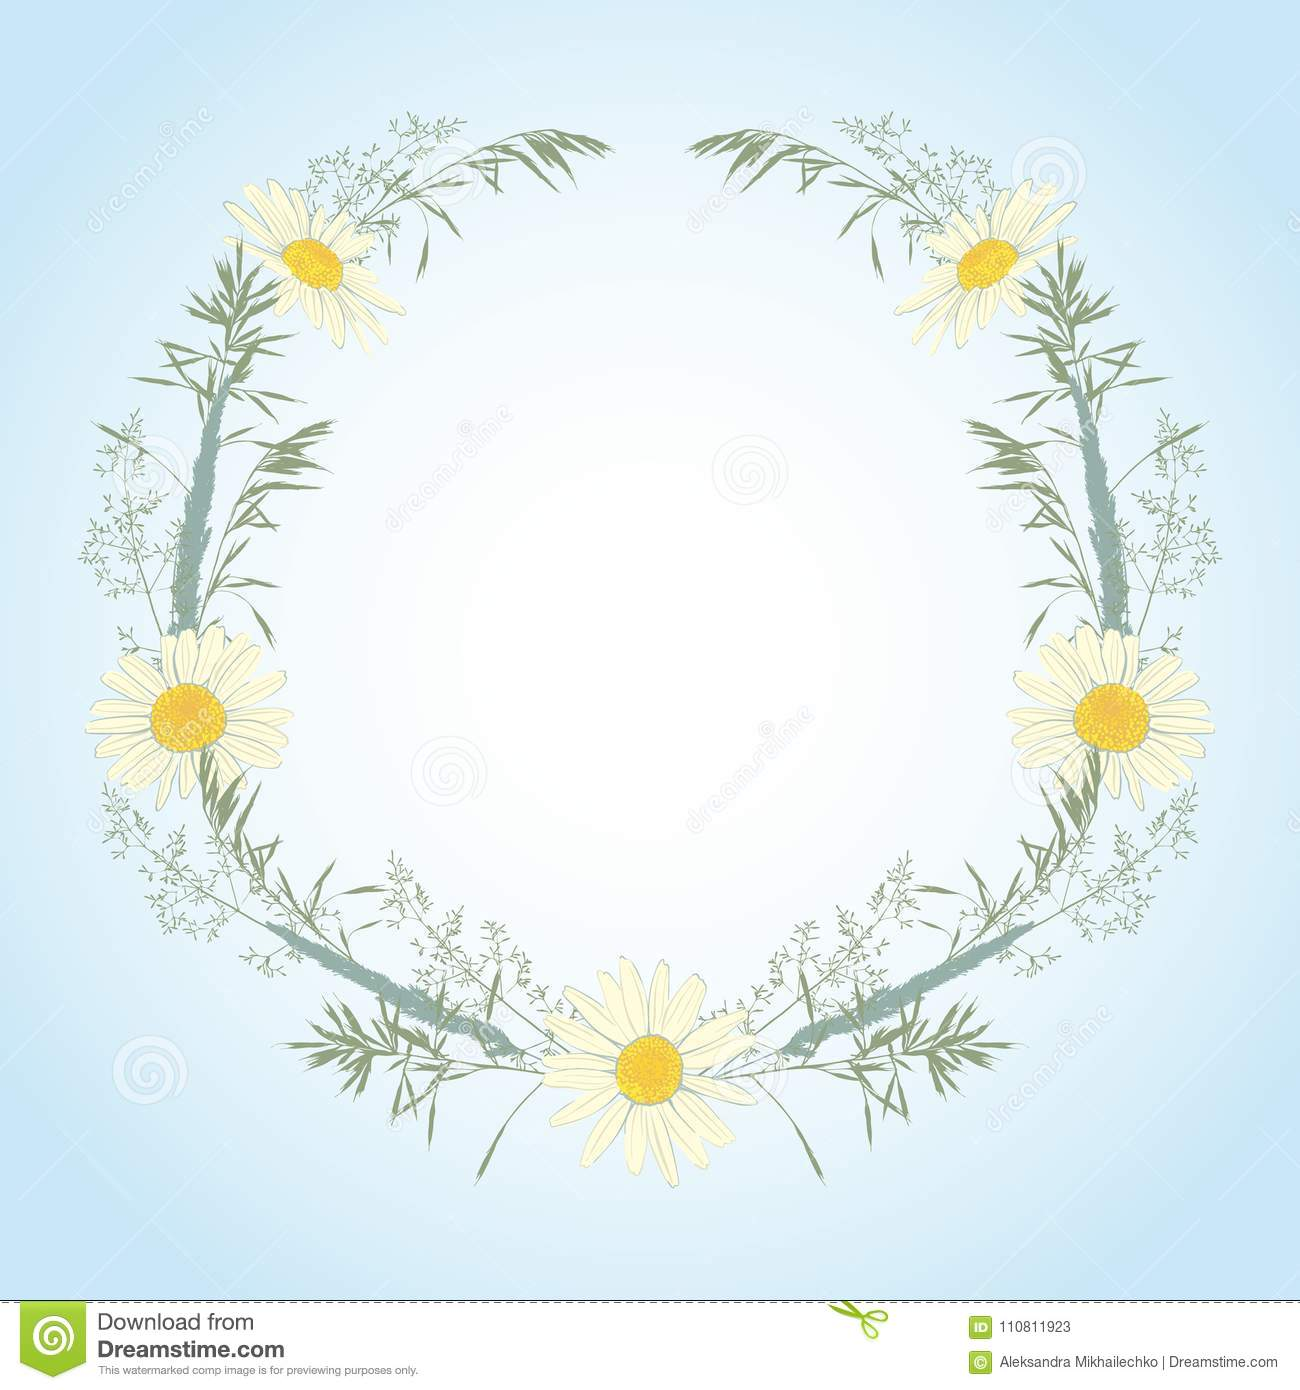 Hand Drawn Wreath With Camomile And Herbs  Stock Vector